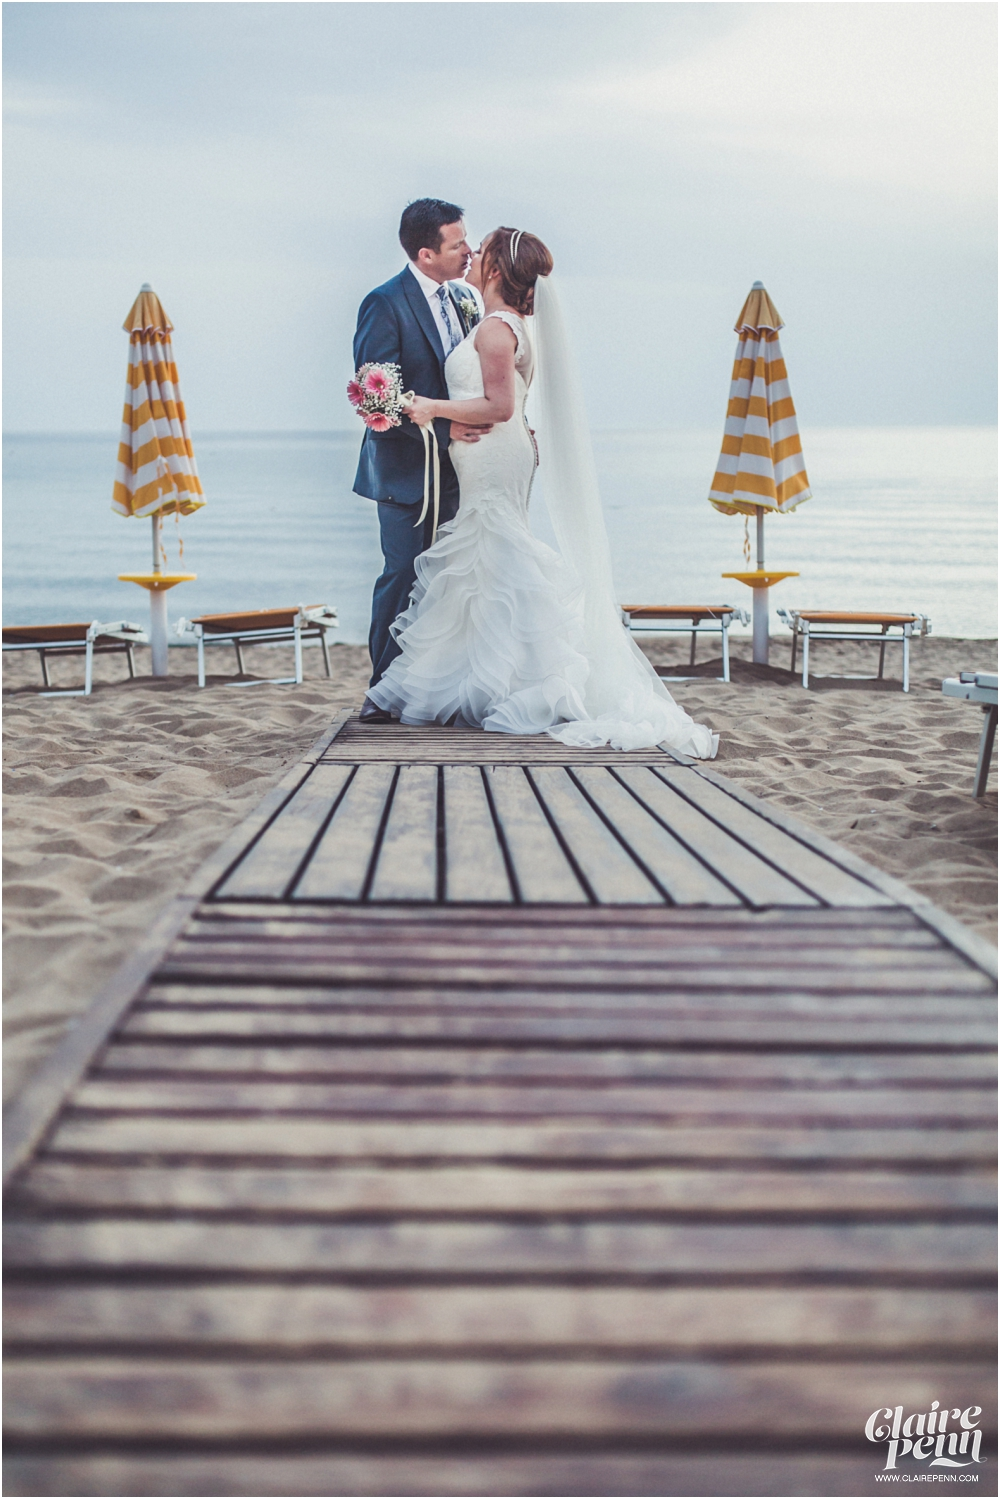 Italy Santa Maria Cilento coast Amalfi destination wedding photographer_0064.jpg